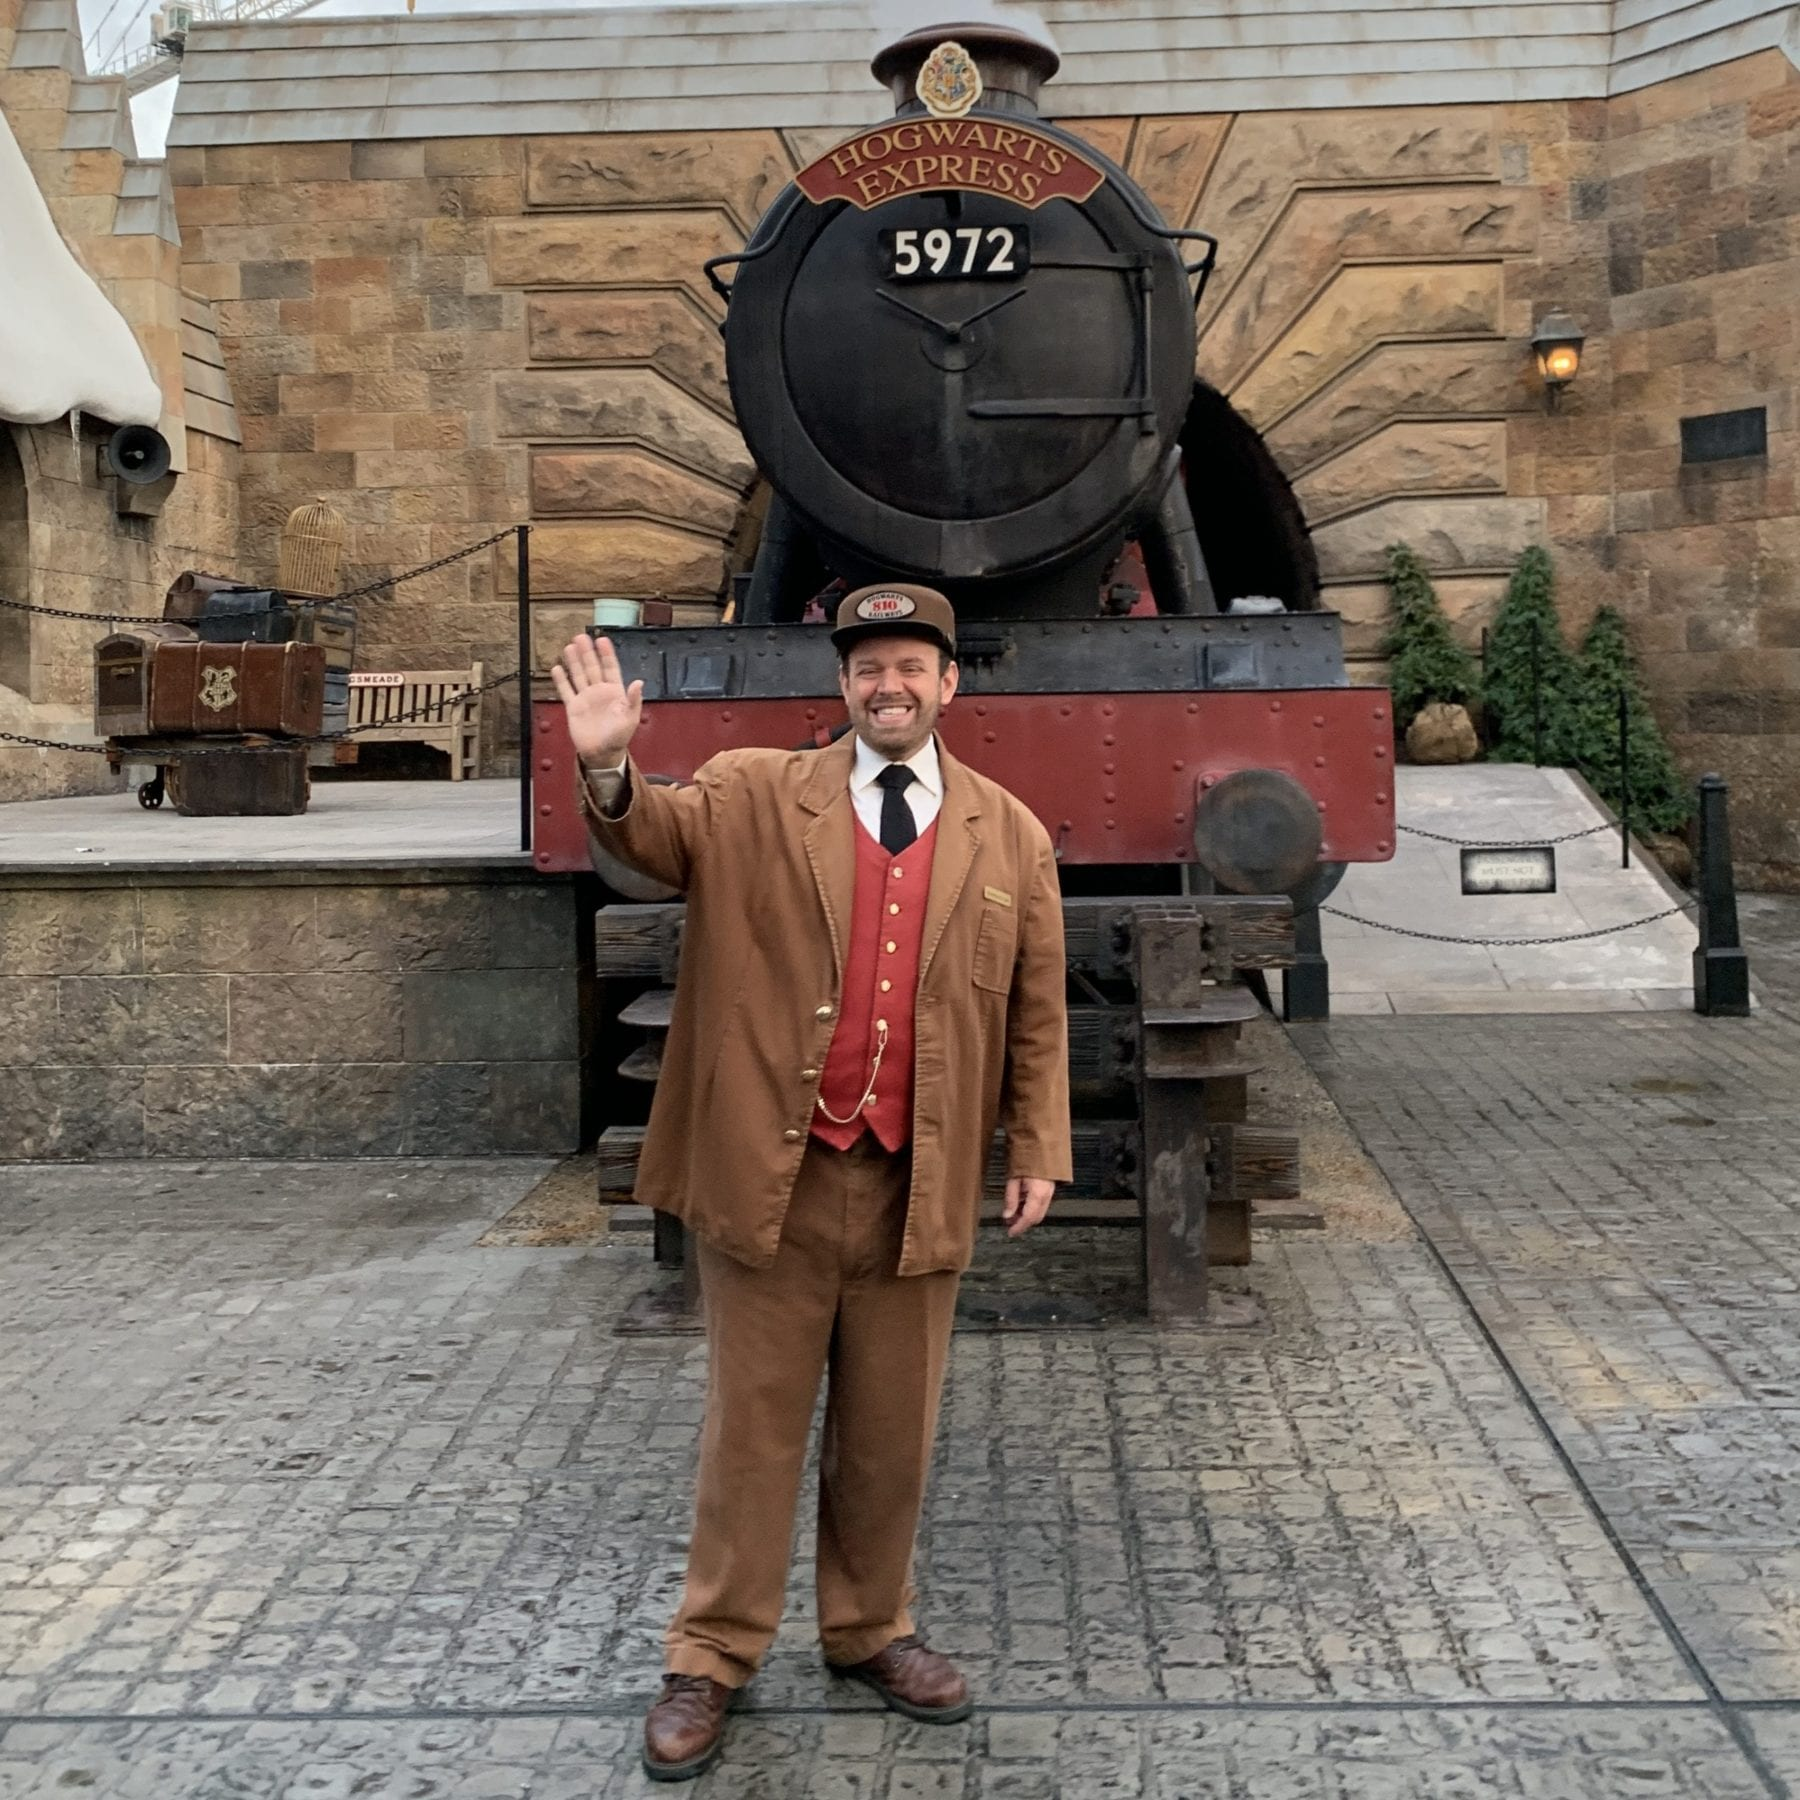 Hogwarts Express at Universal's Harry Potter World